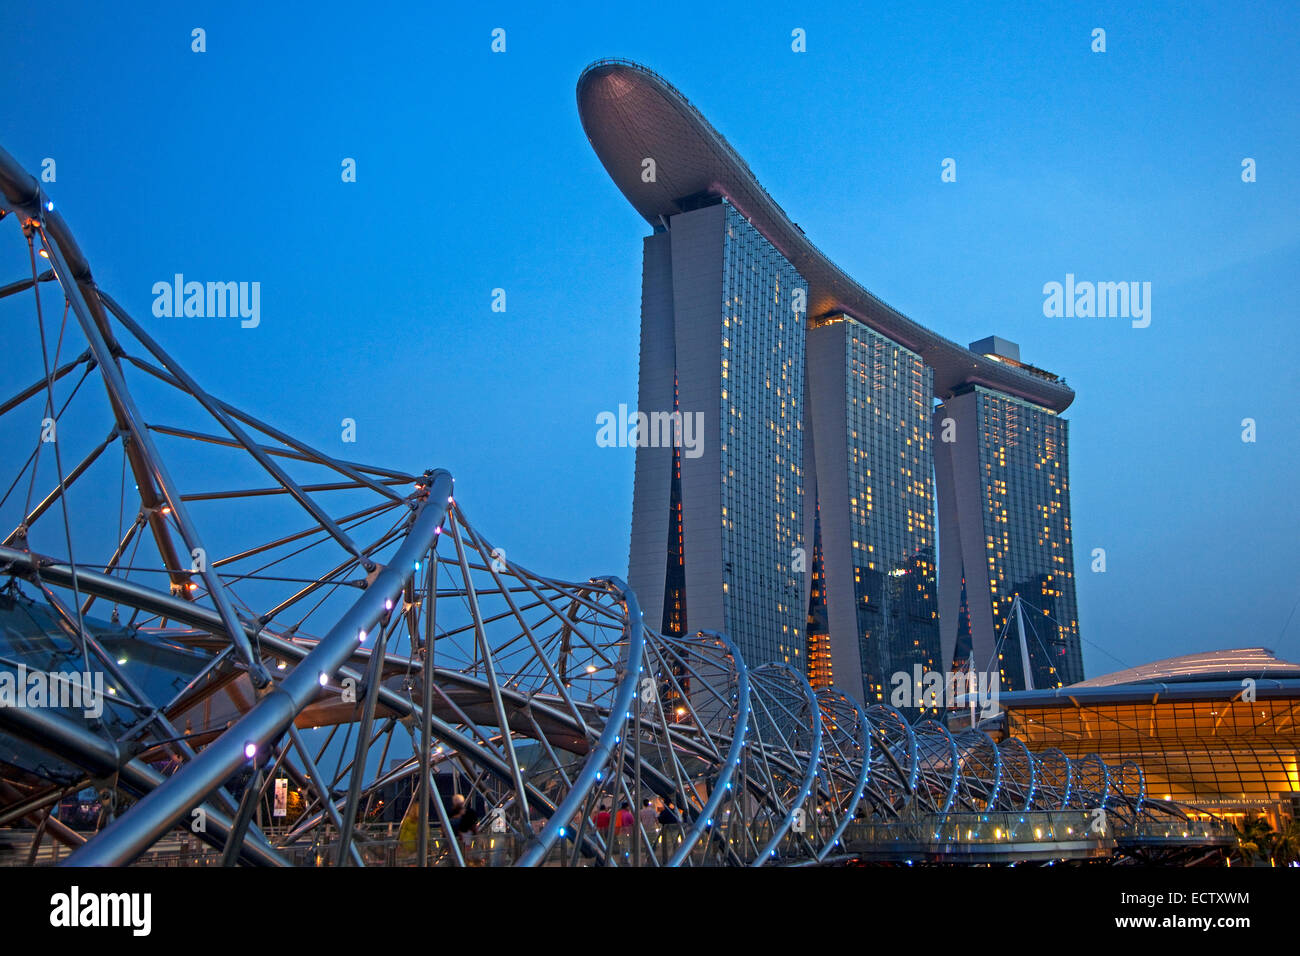 Marina Bay Sands Skypark and Hotel and the Helix bridge in Singapore - Stock Image